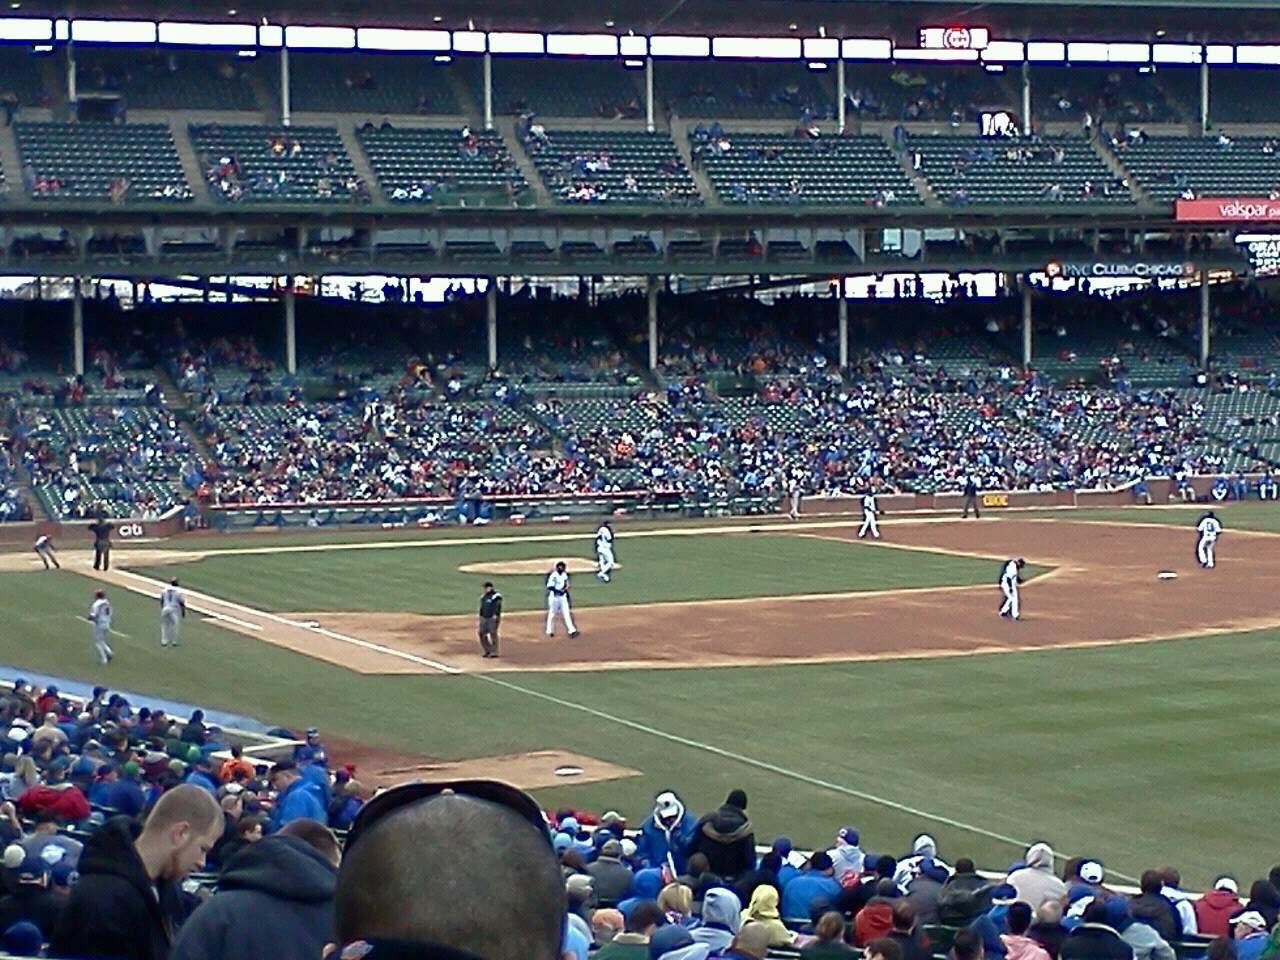 Wrigley Field Section 240 Row 6 Seat 105